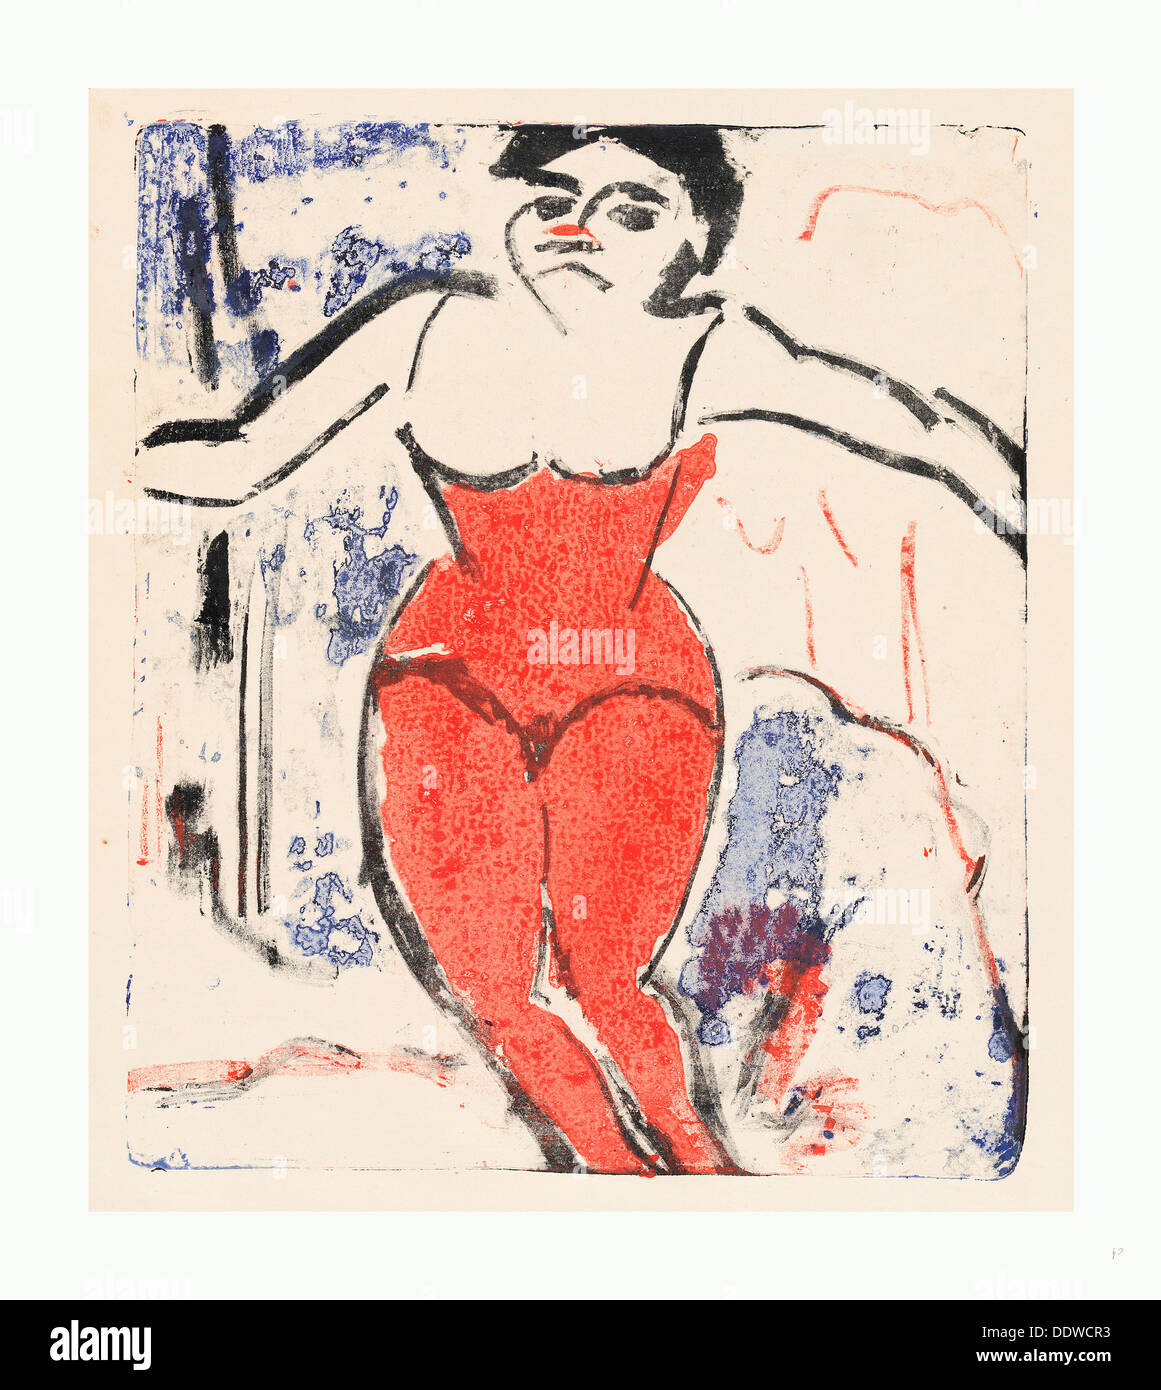 Ernst Ludwig Kirchner, Performer Bowing (Beifallheischende Artistin), German, 1880 - 1938, 1909, lithograph in red, black - Stock Image